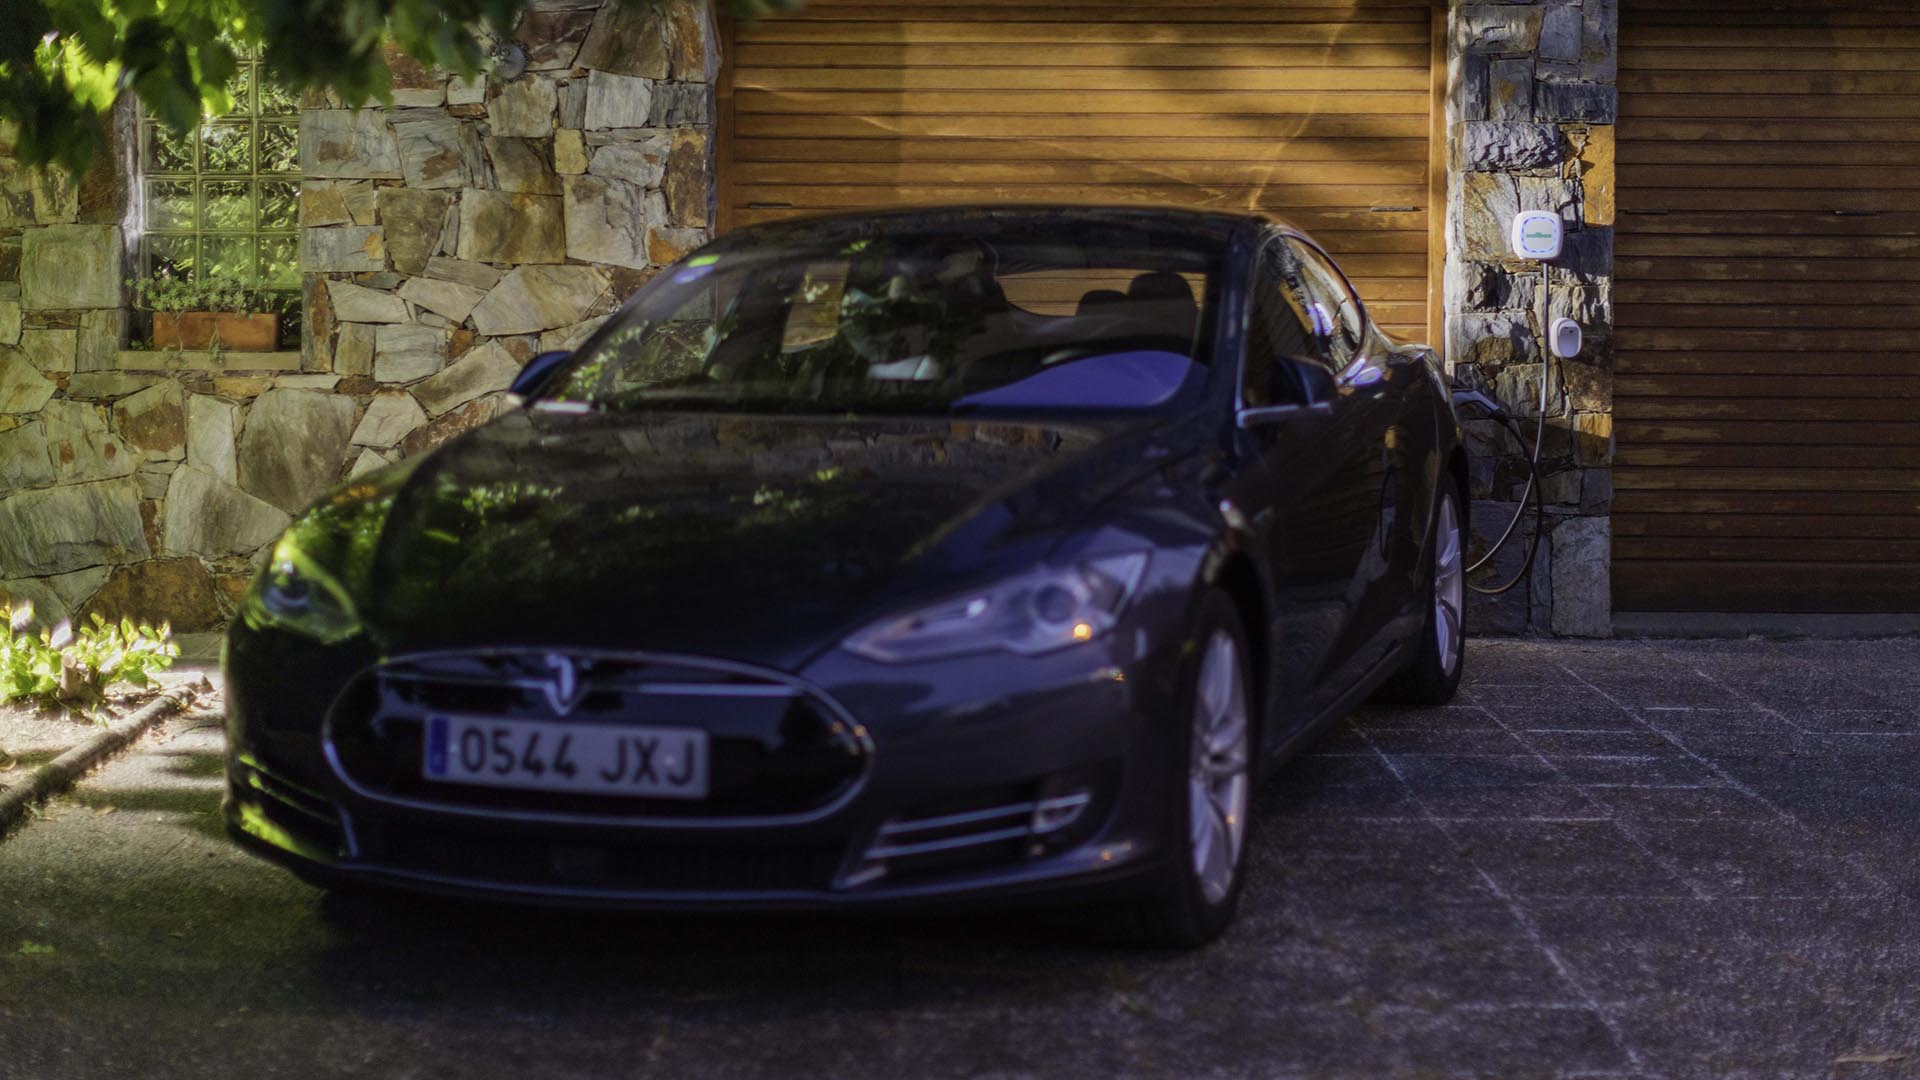 Wallbox and Tesla Model S